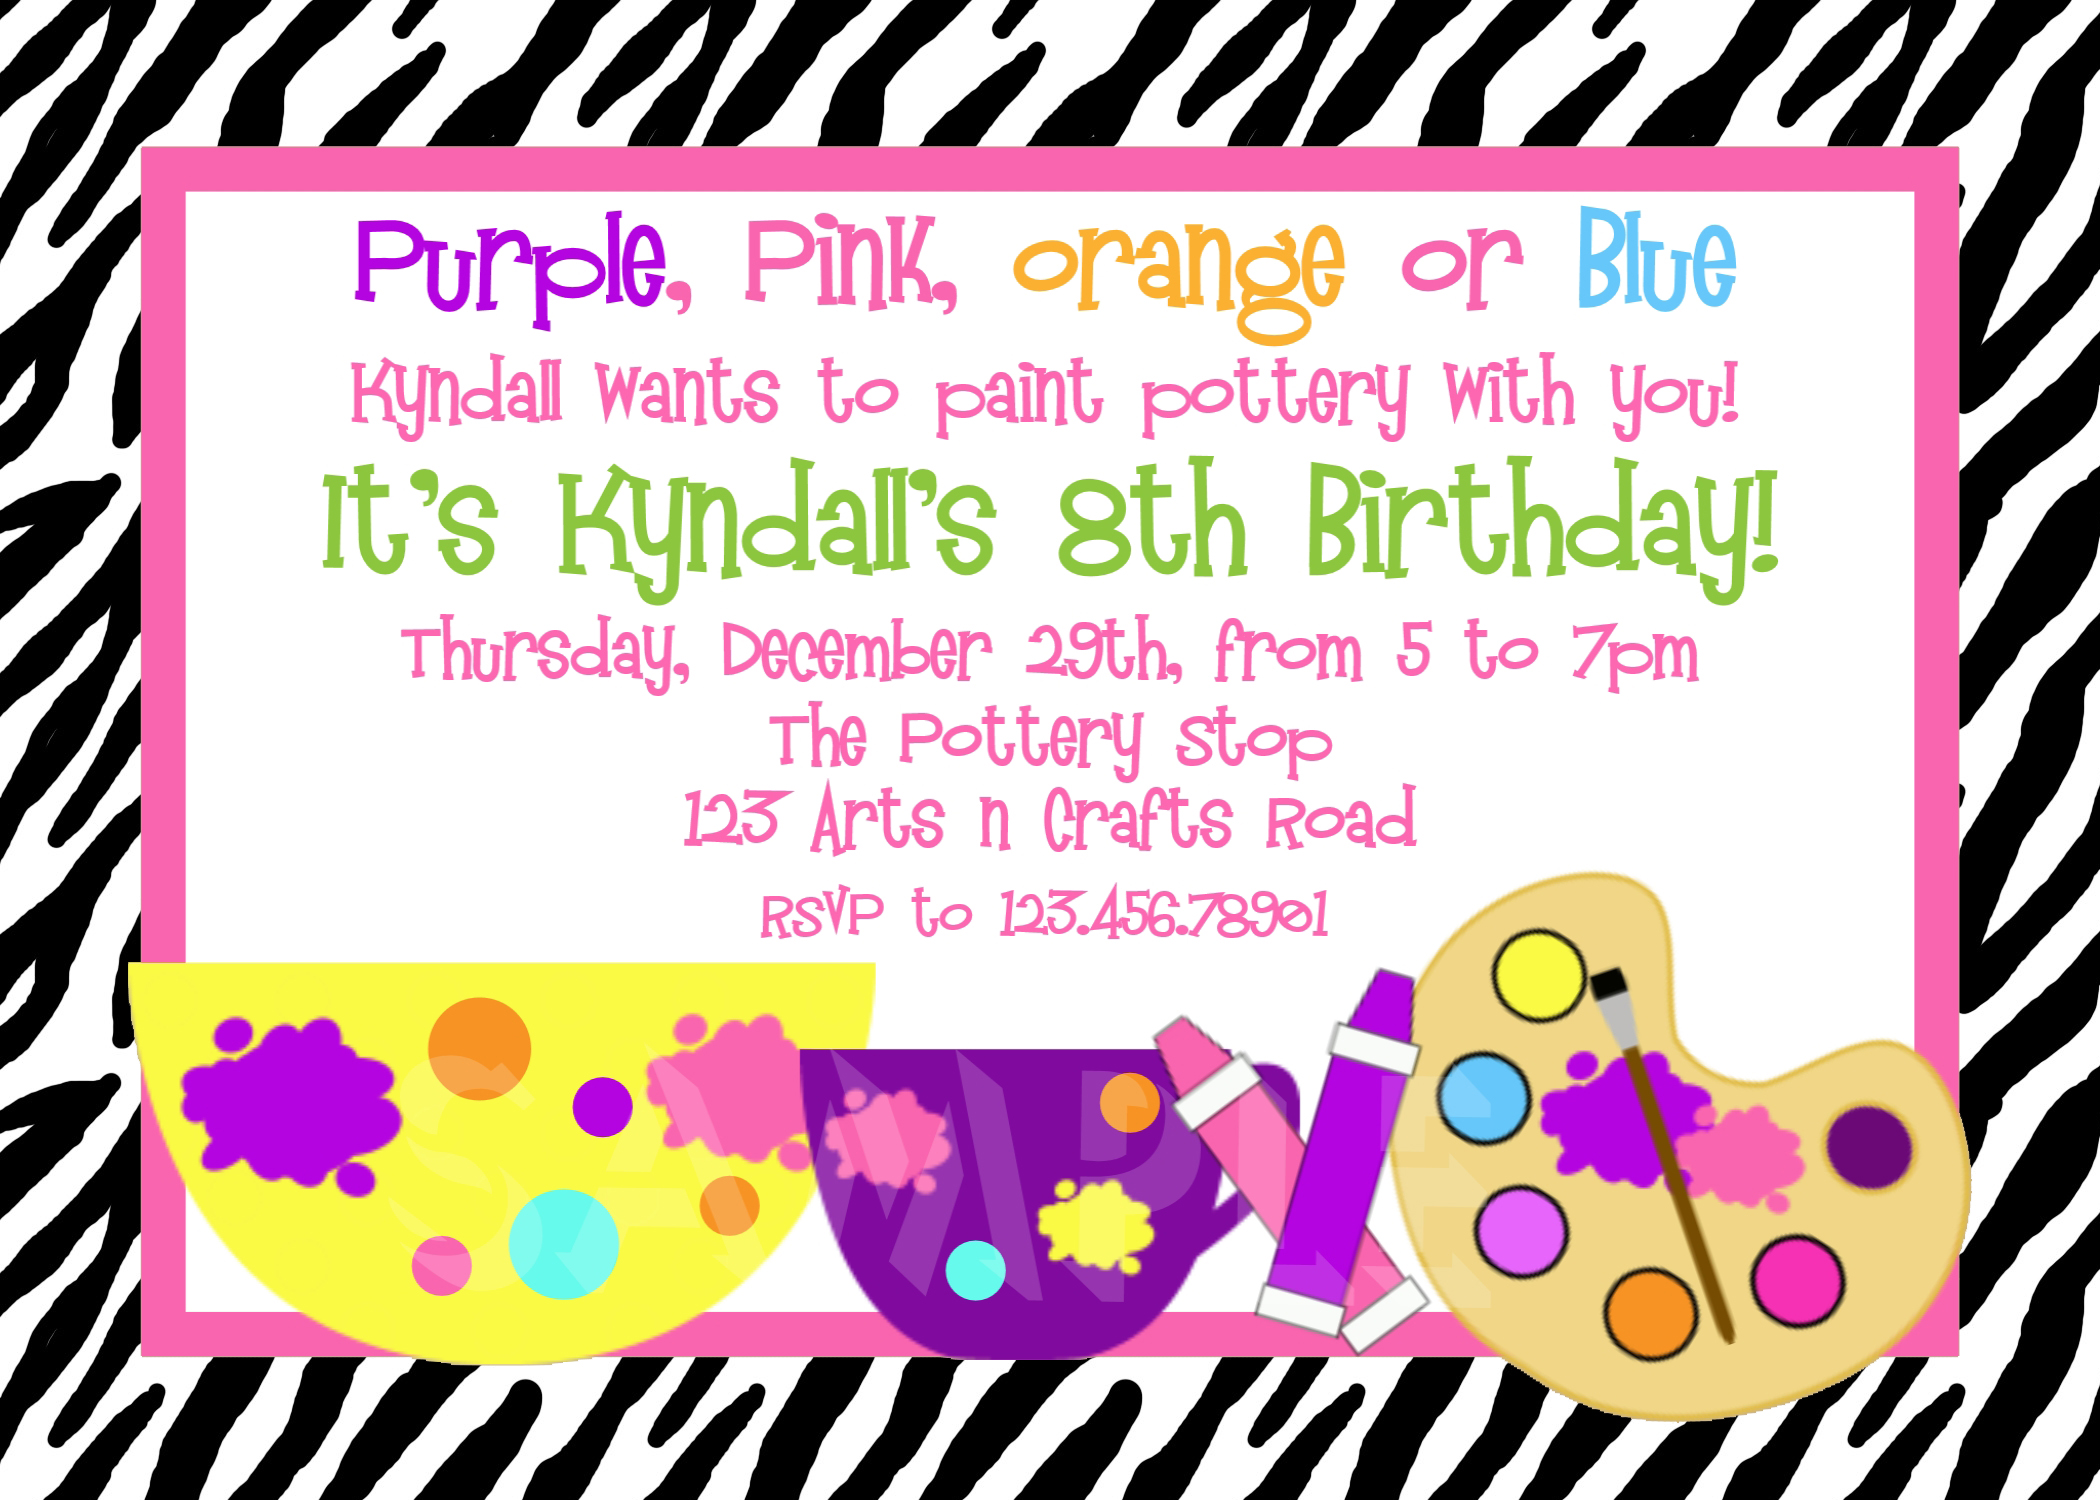 Printable Birthday Invitations Girls Pottery Painting Party – Printed Birthday Invitations